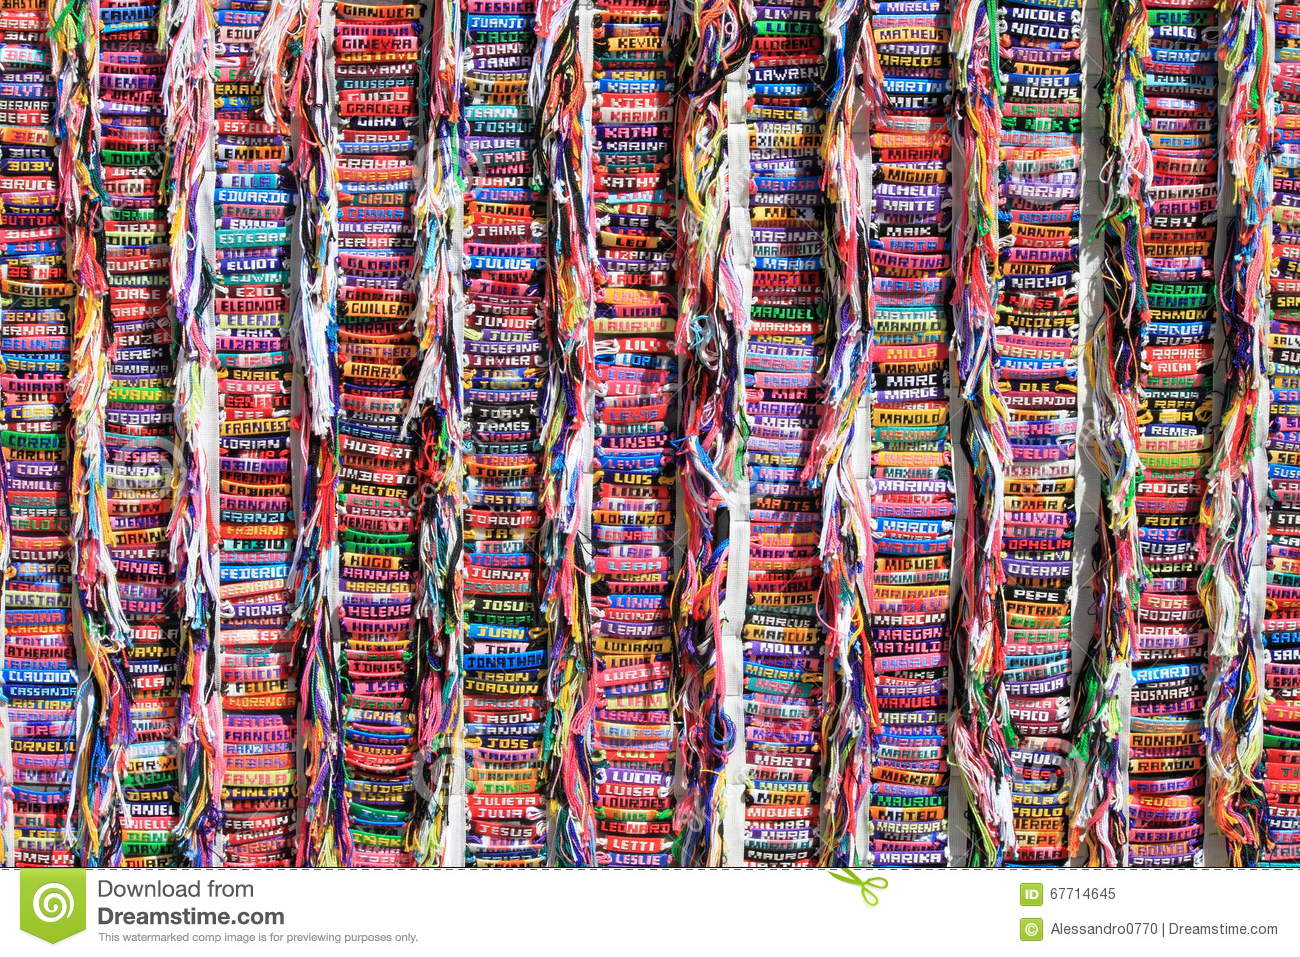 Collection Of Name Bracelets Stock Image - Image of colour